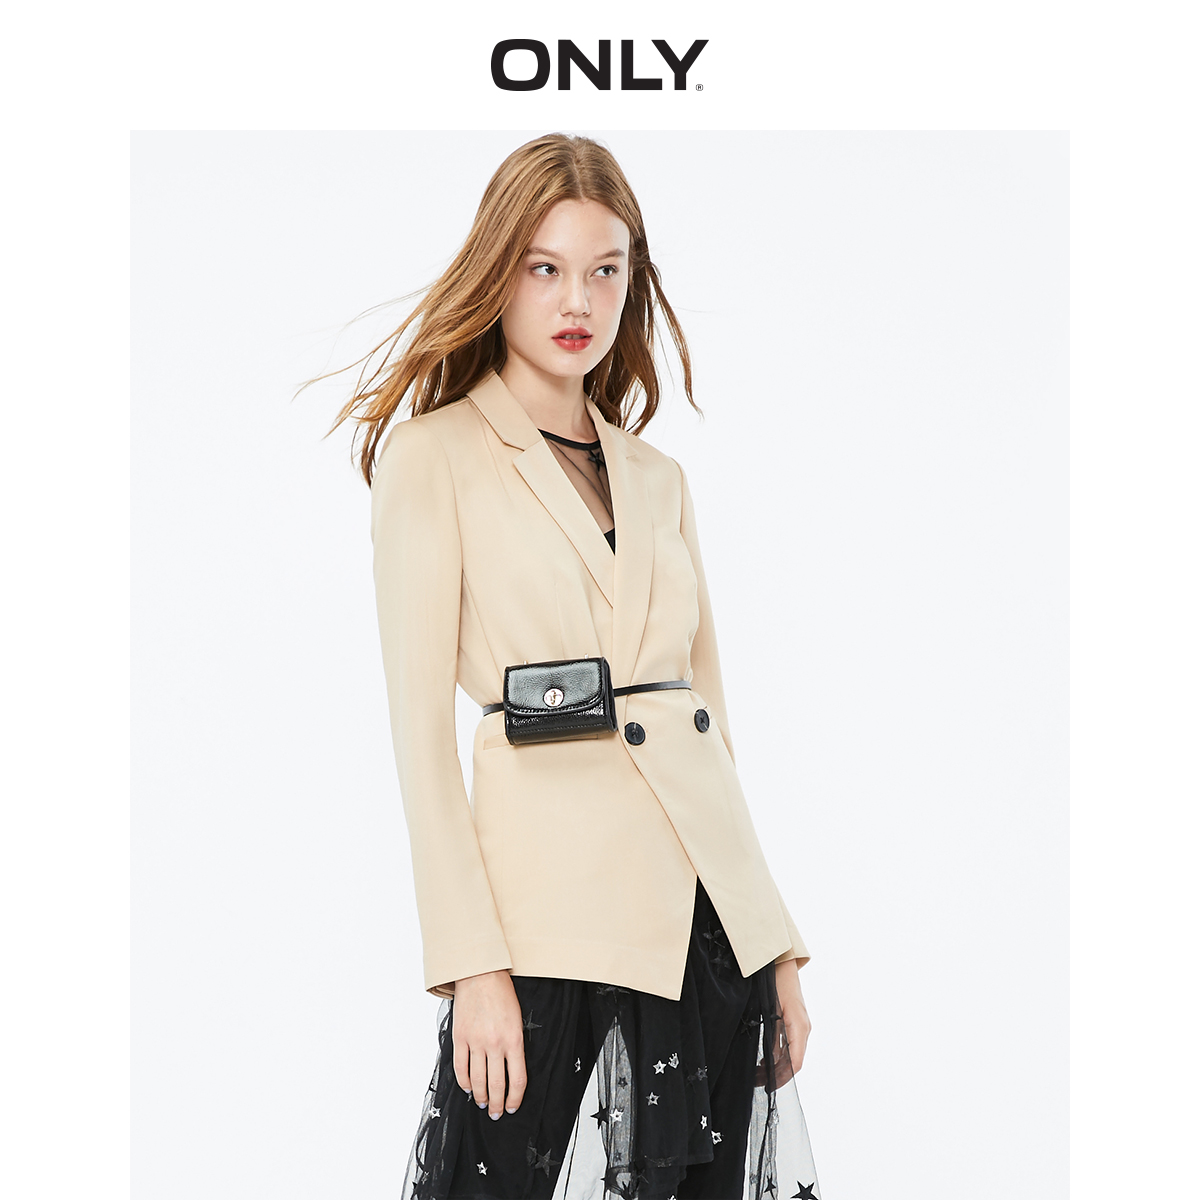 ONLY Women's  Pure Color Thin Blazer   119308515